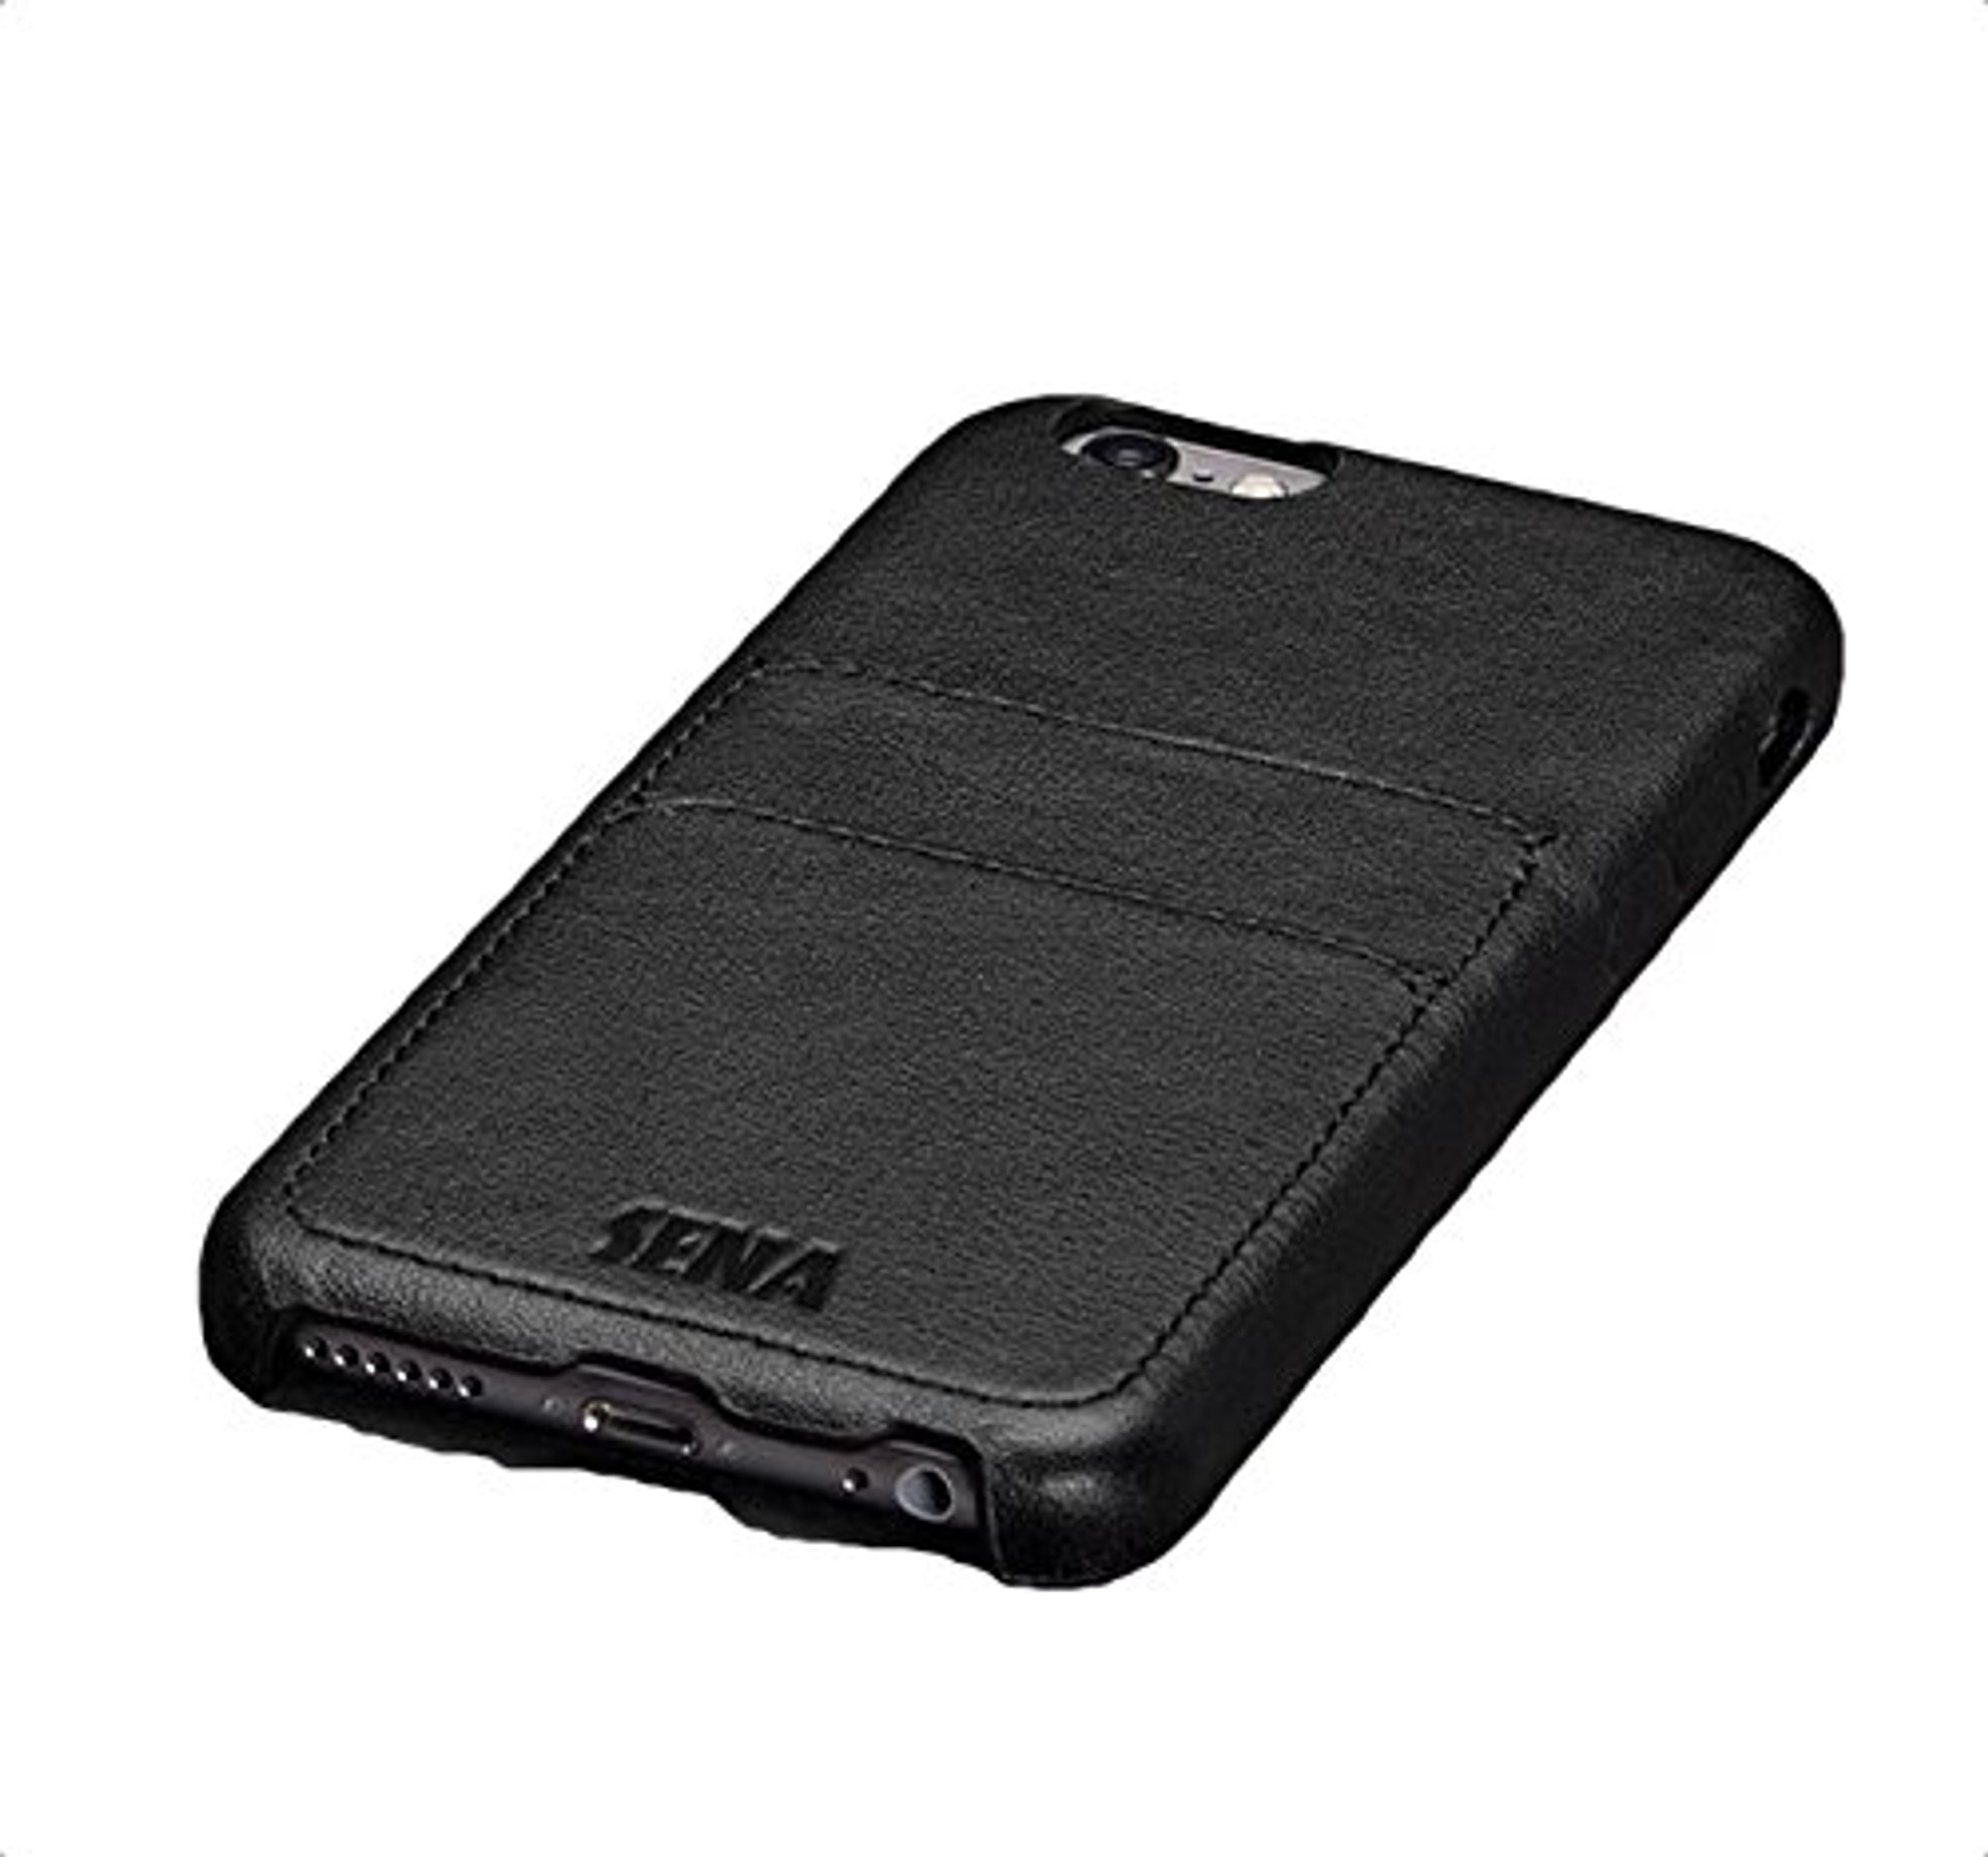 san francisco 75908 a8ad2 Sena Snap On Leather Wallet Case for iPhone 6S Plus / 6 Plus - Black